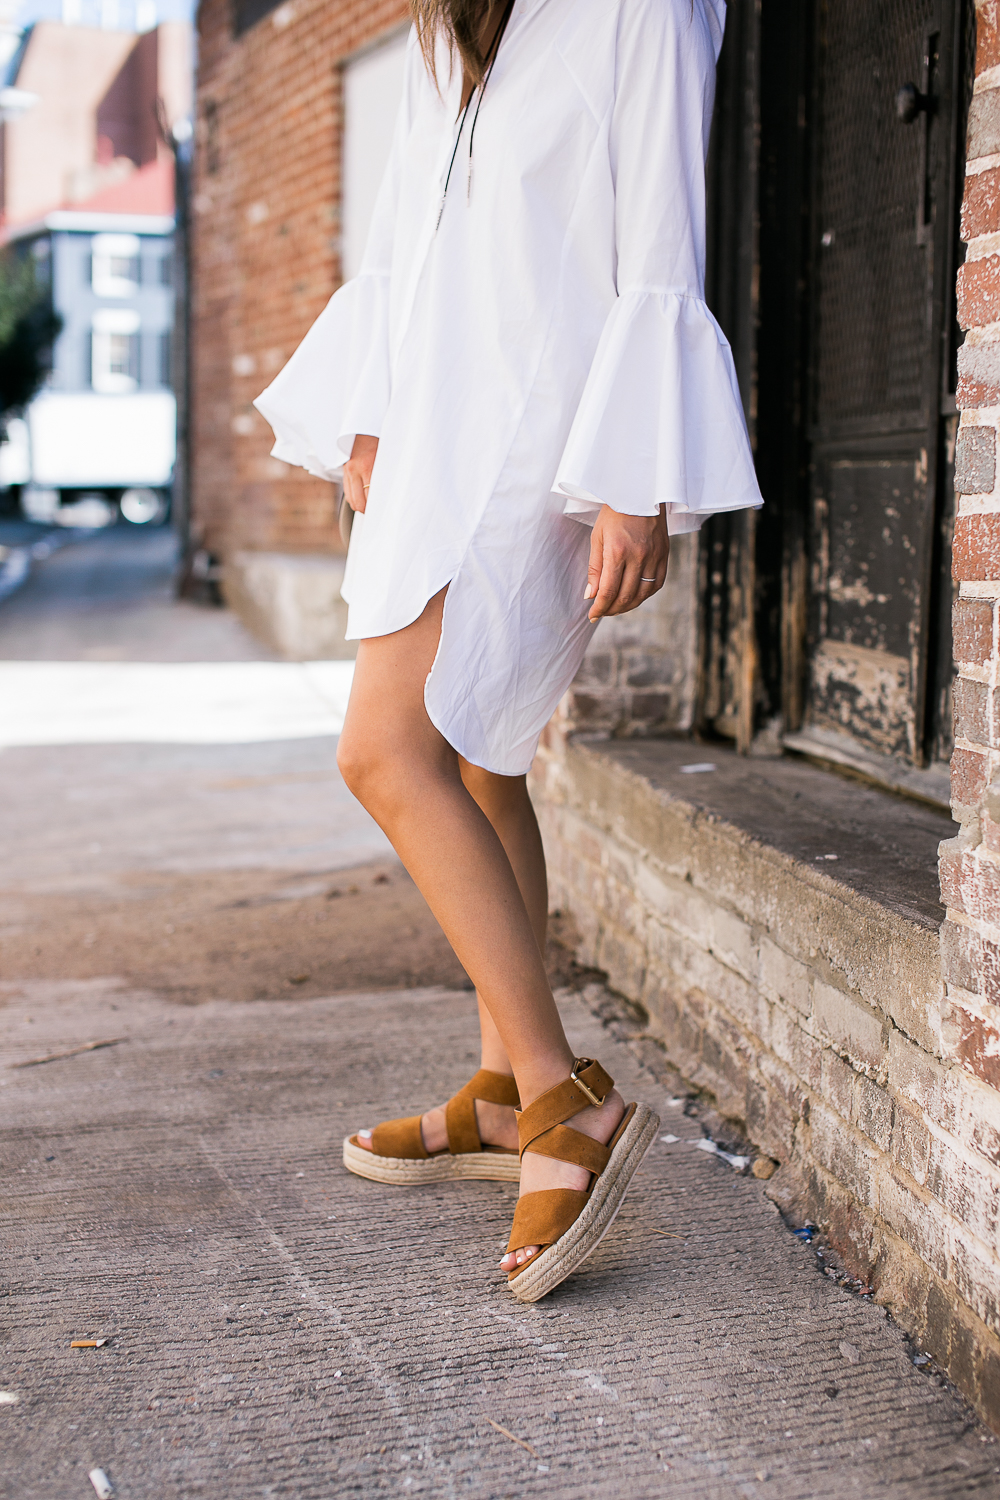 Style MBA wears Shirtdress and Raye Sandals from Revolve Clothing